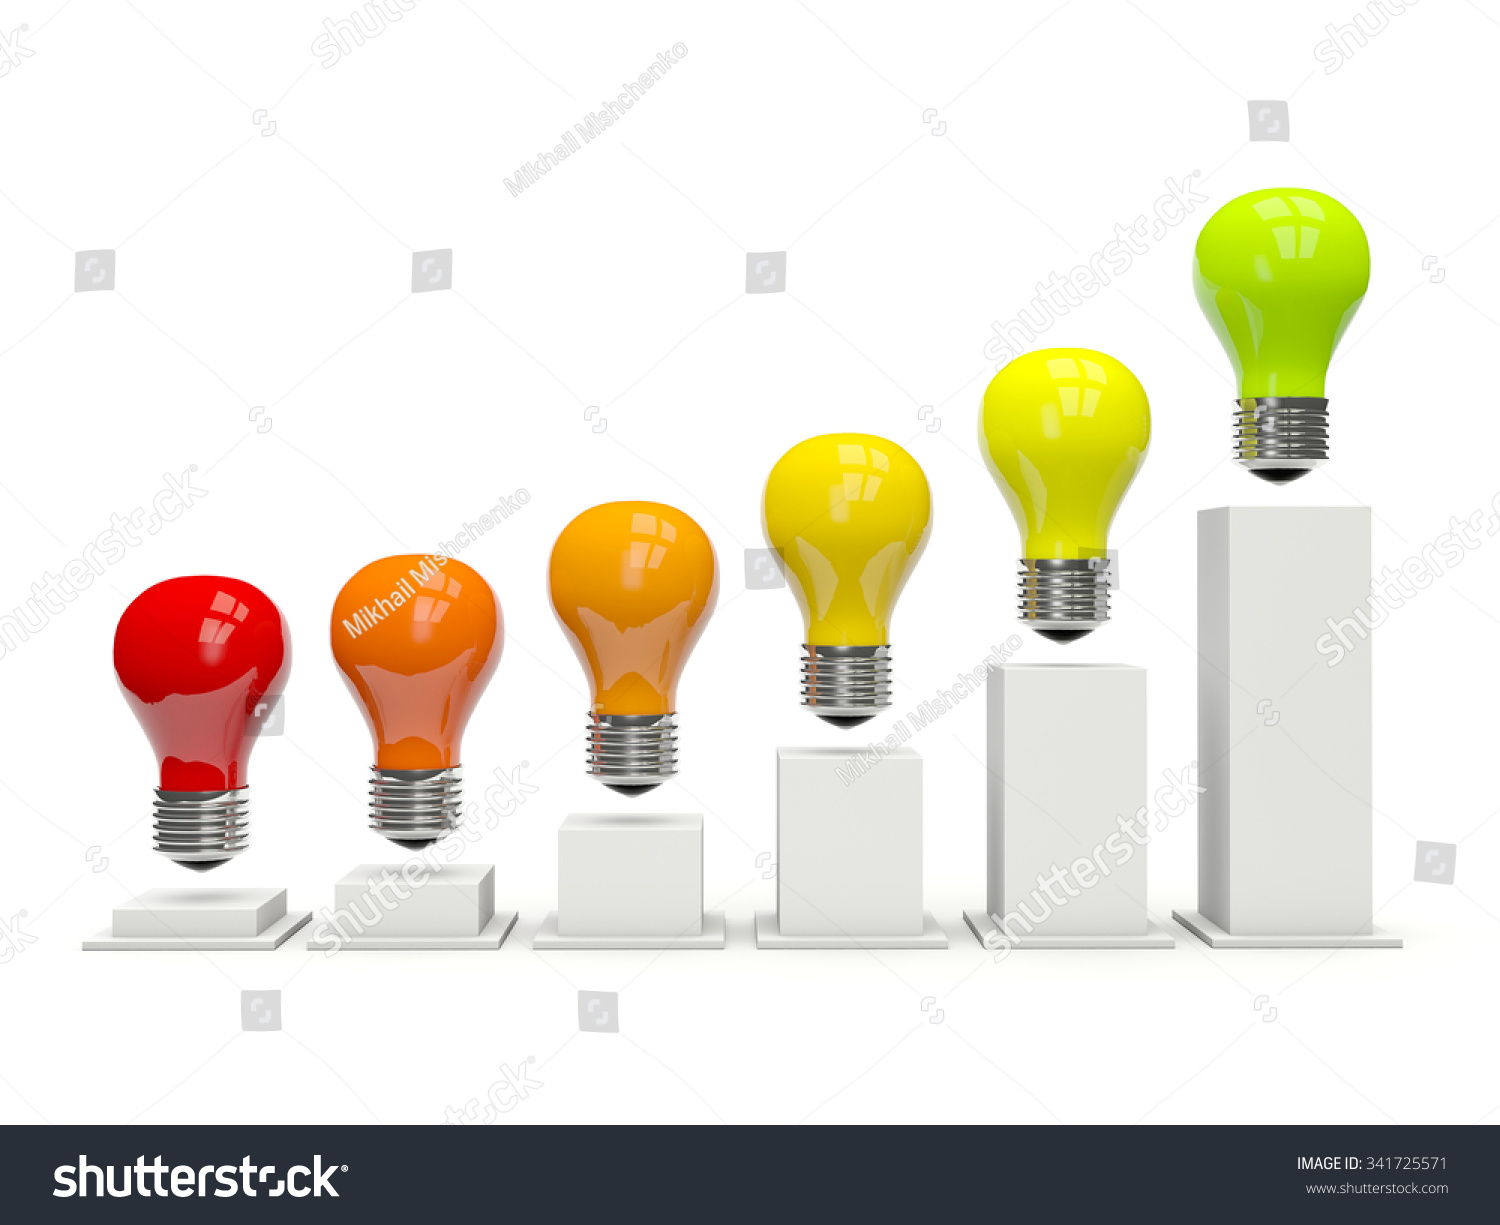 hight resolution of diagram of light bulbs isolated on white